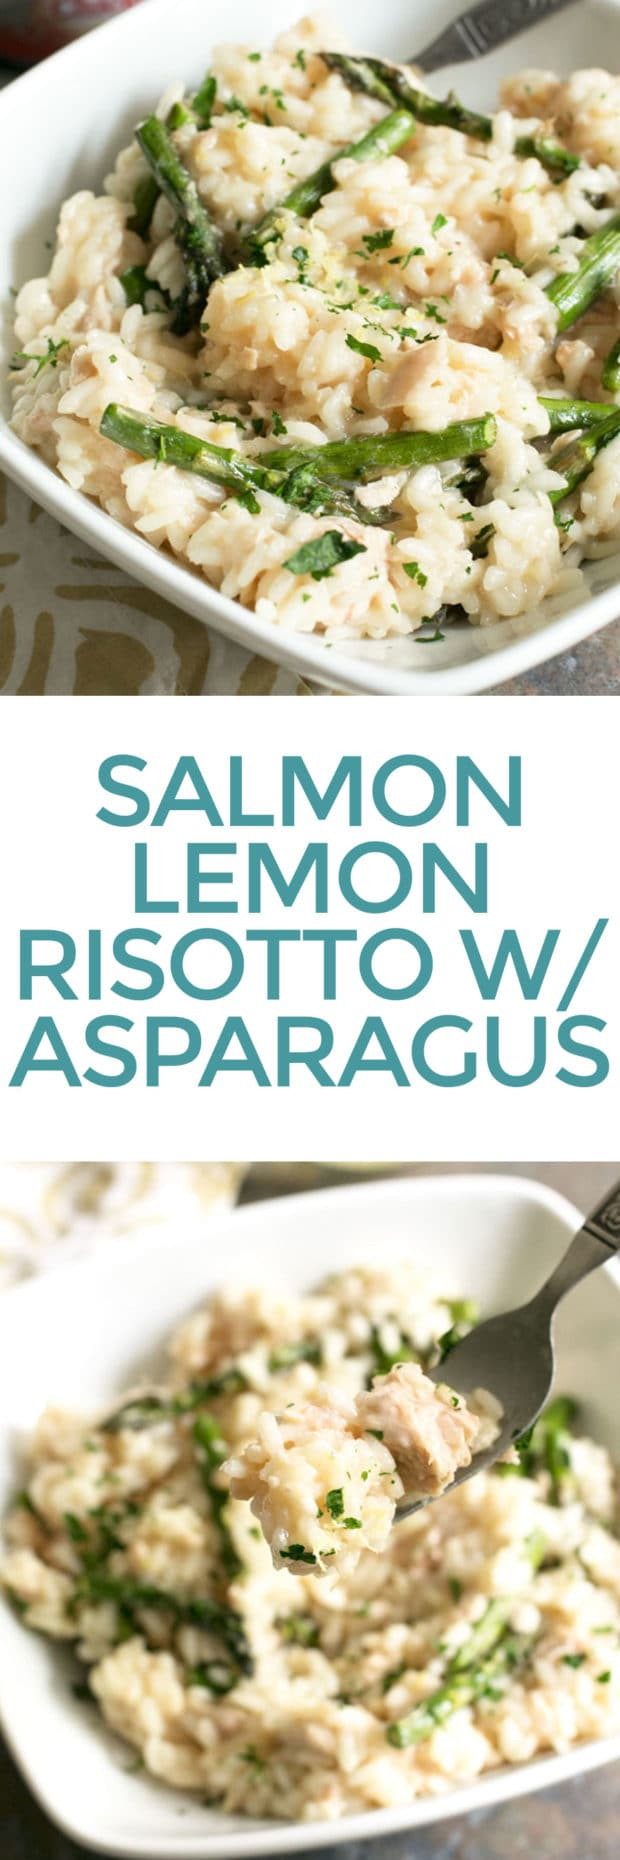 Salmon Lemon Risotto with Asparagus – Cake 'n Knife